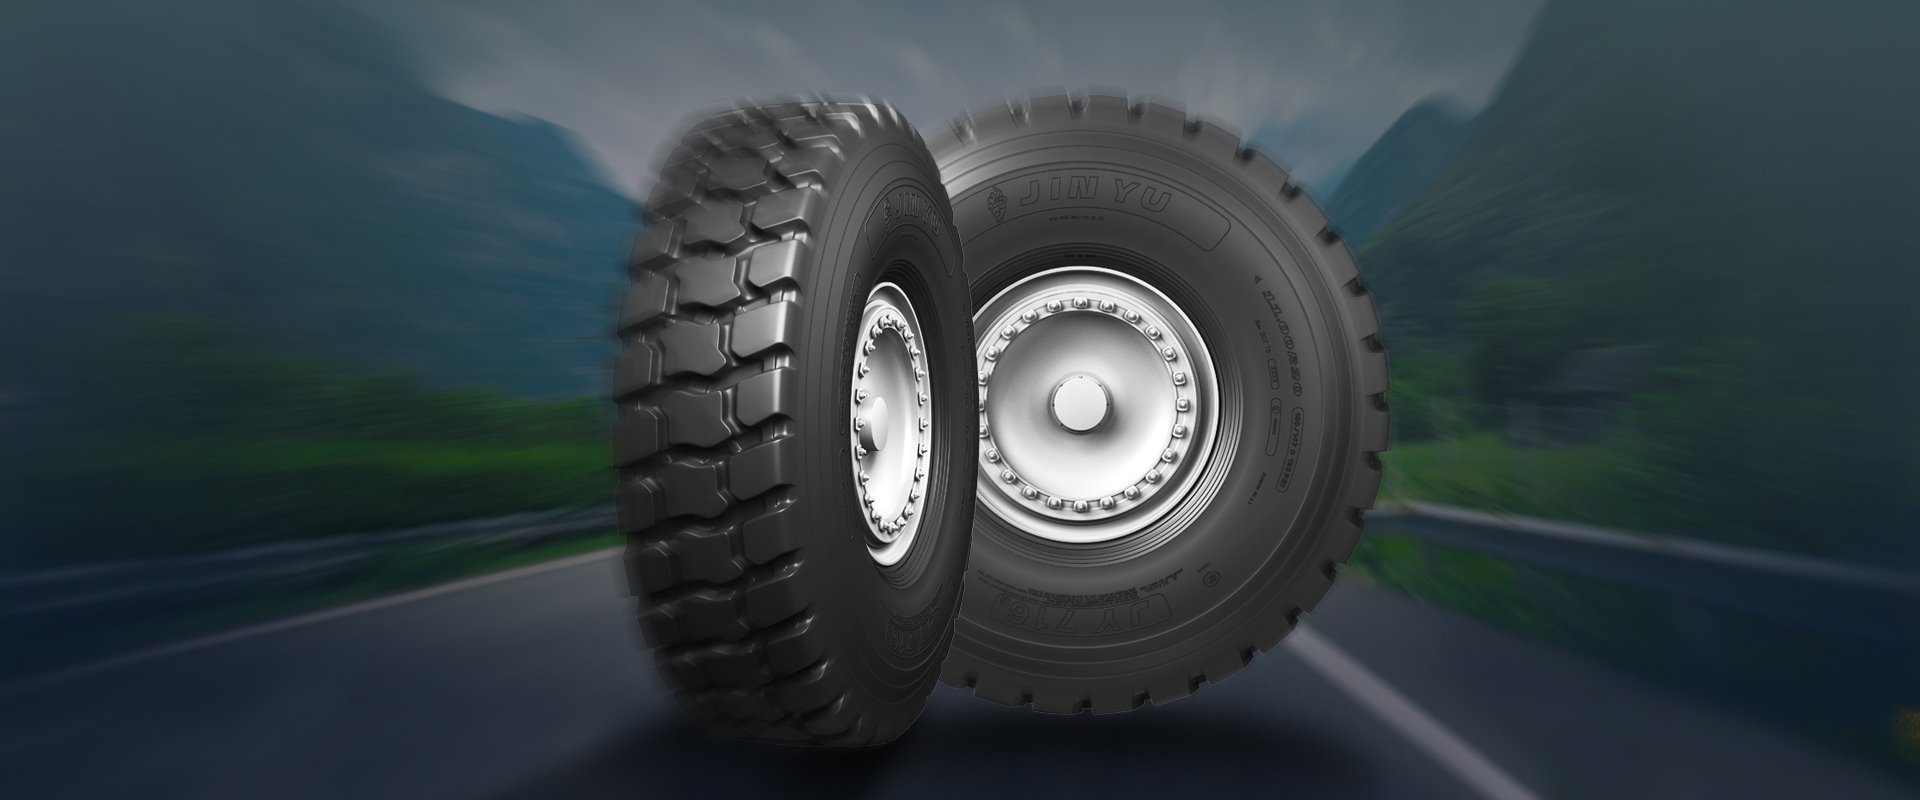 JINYU TIRE GROUP